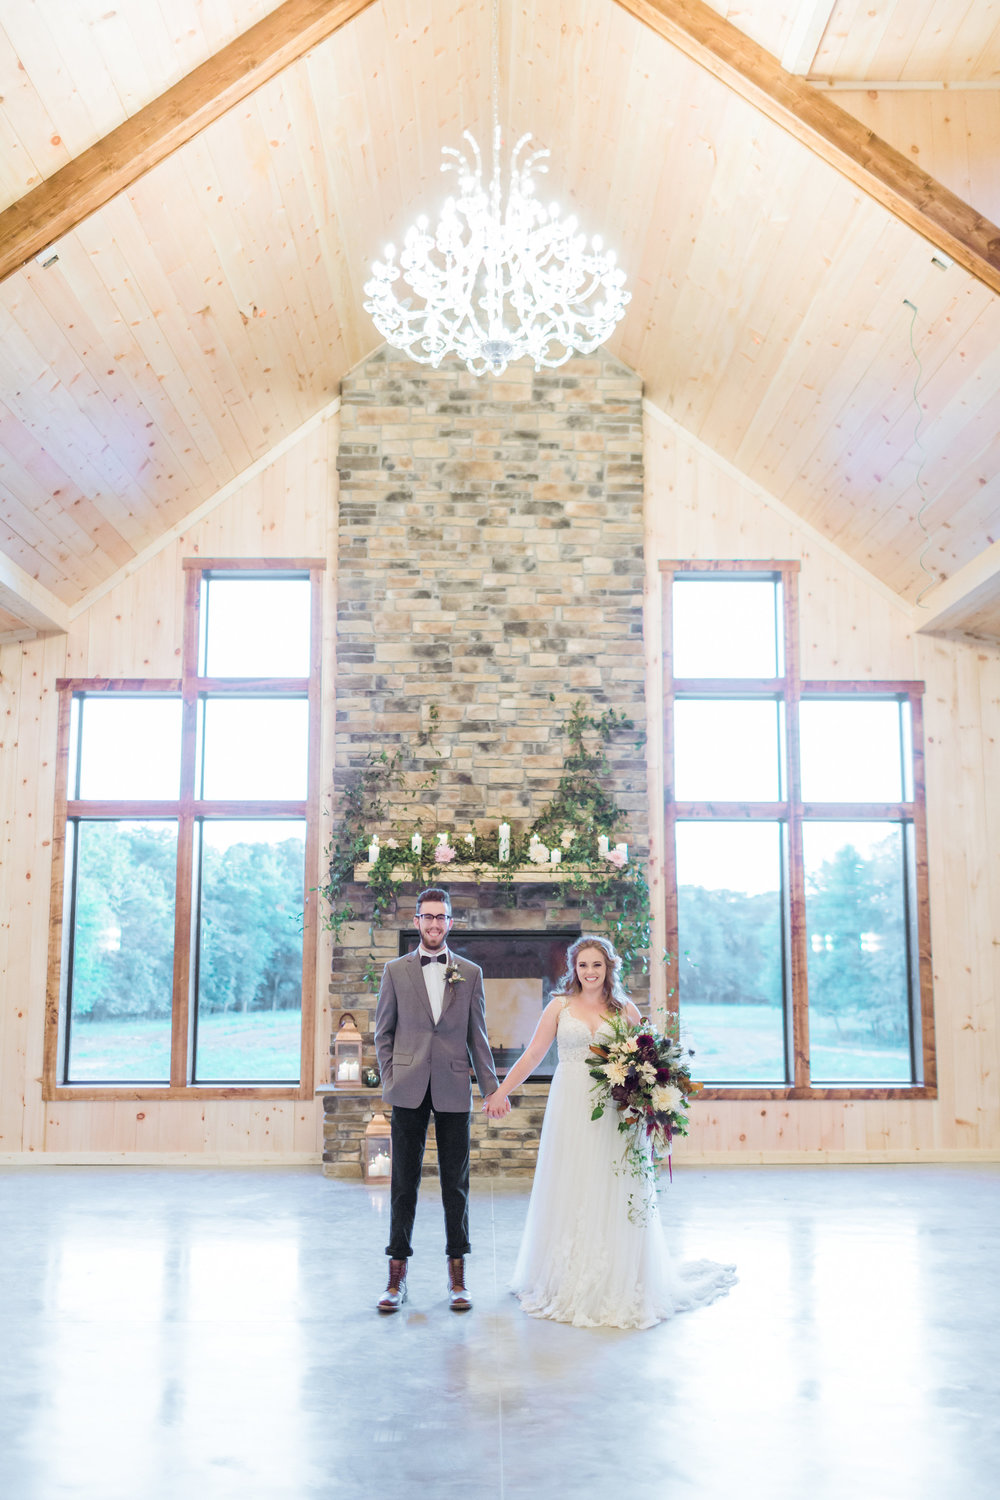 country-lane-lodge-adel-iowa-wedding-venue-white-lace-dress-purple-red-lush-bouquet-planned-by-mostly-becky-weddings-ceremony-lodge-wedding-chandelier